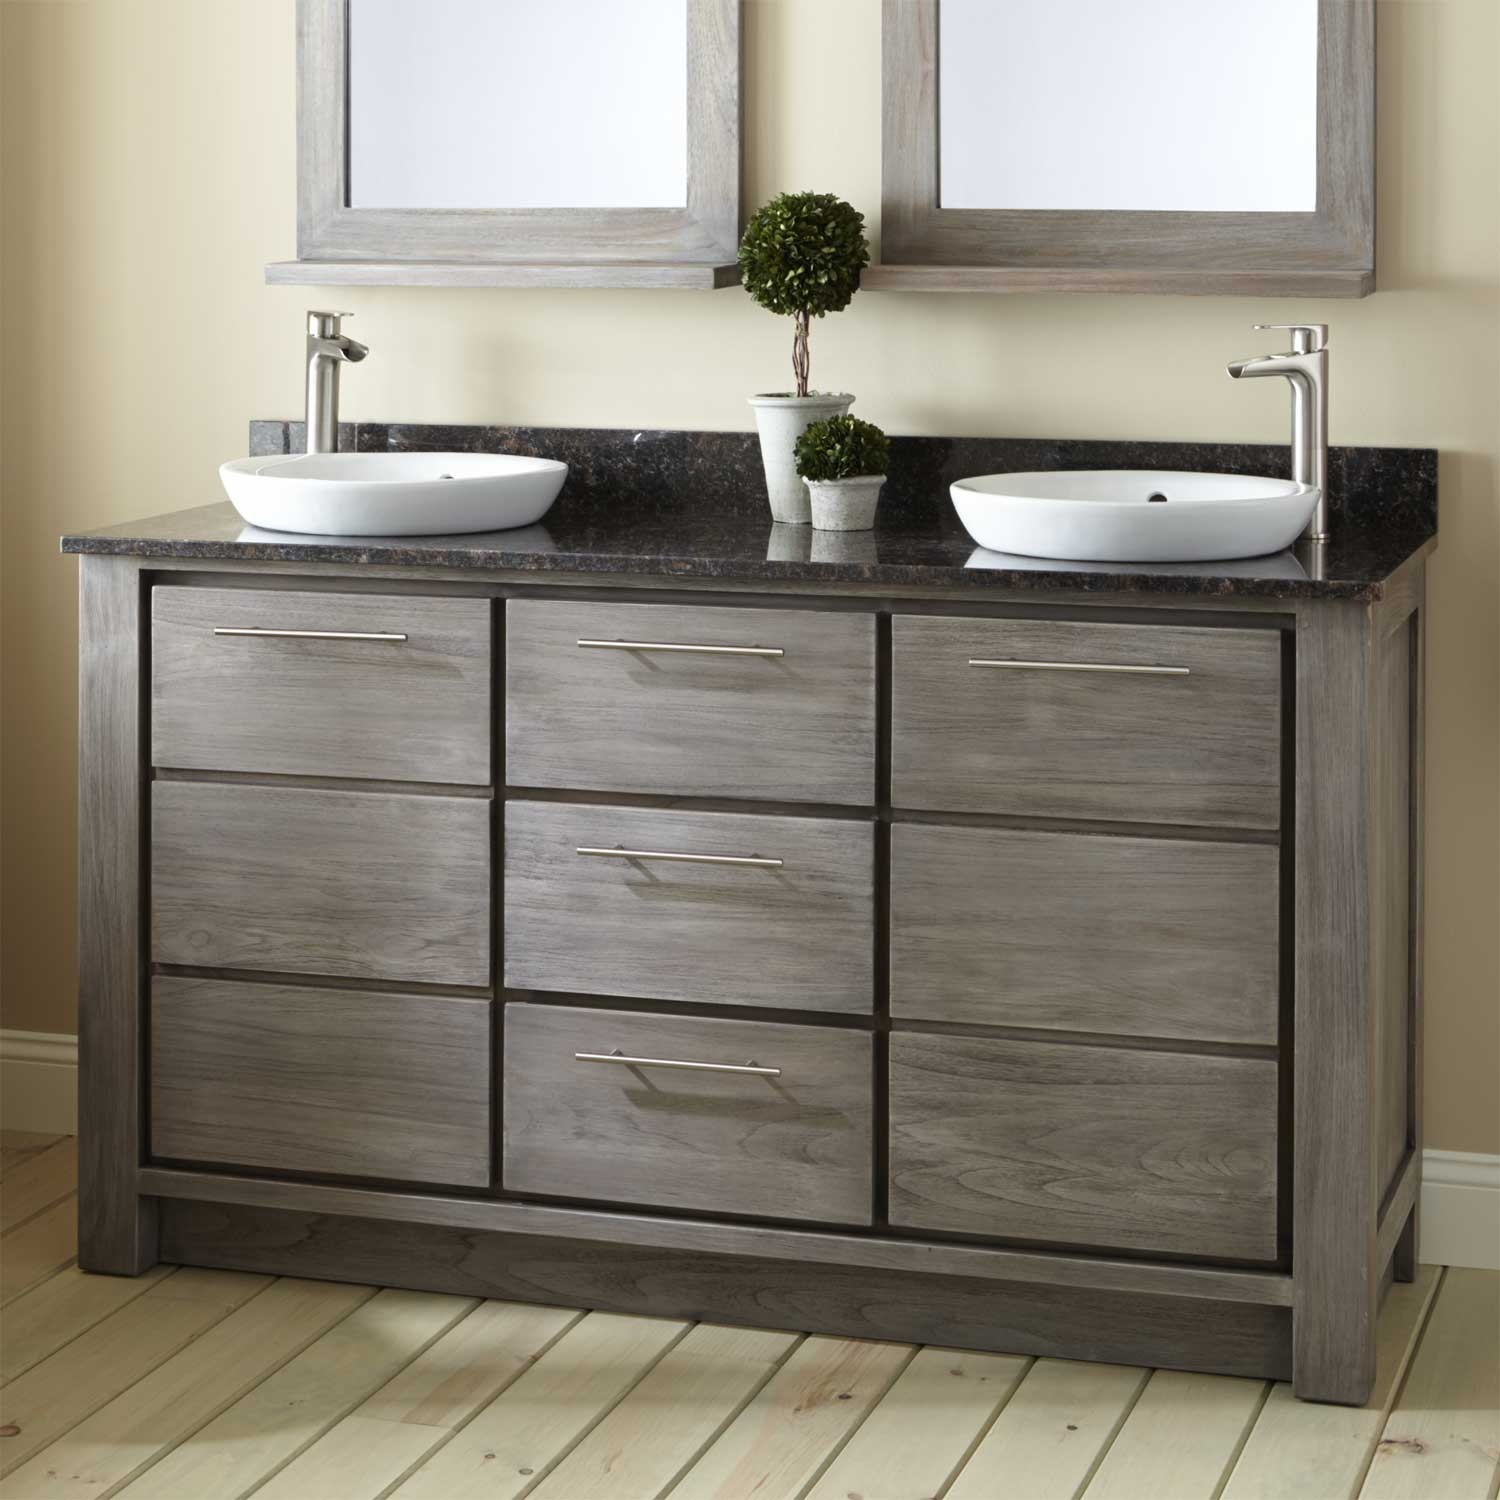 Fabulous Bathroom Cabinets San Antonio Copy Bathroom Bathroom Vanity Cabinets with regard to Best of Bathroom Vanities San Antonio